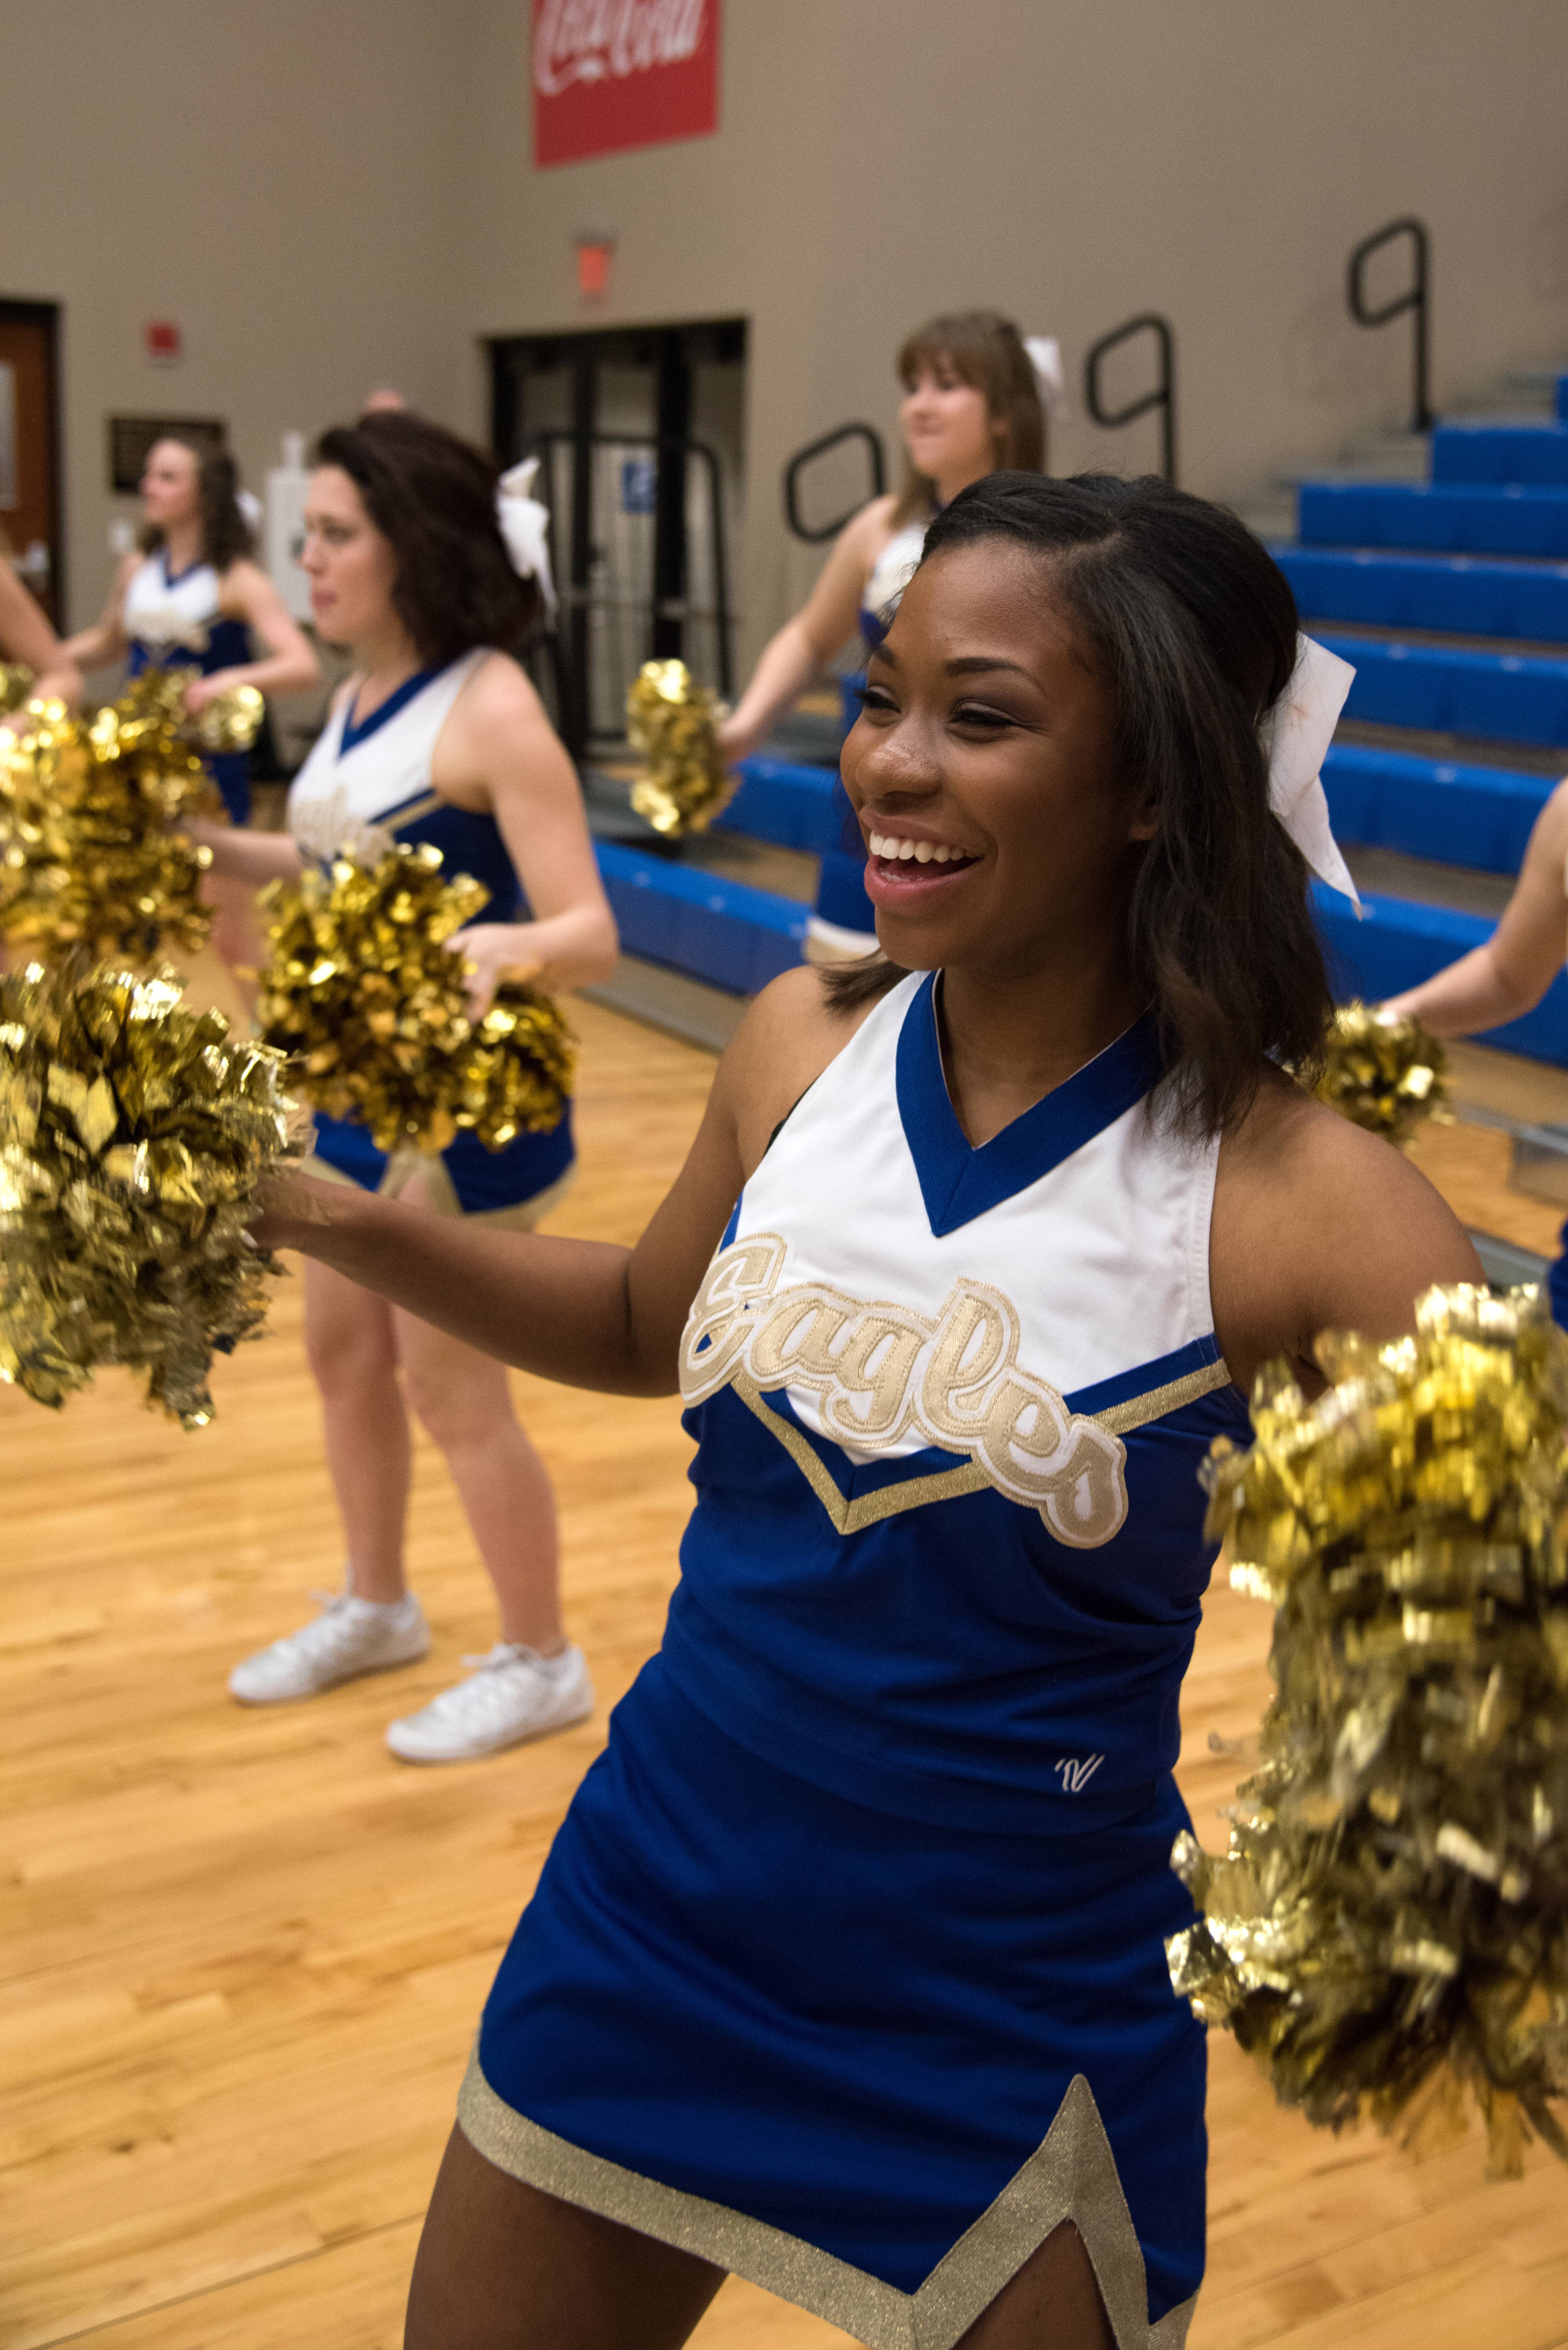 Cheer team engages kids with clinic